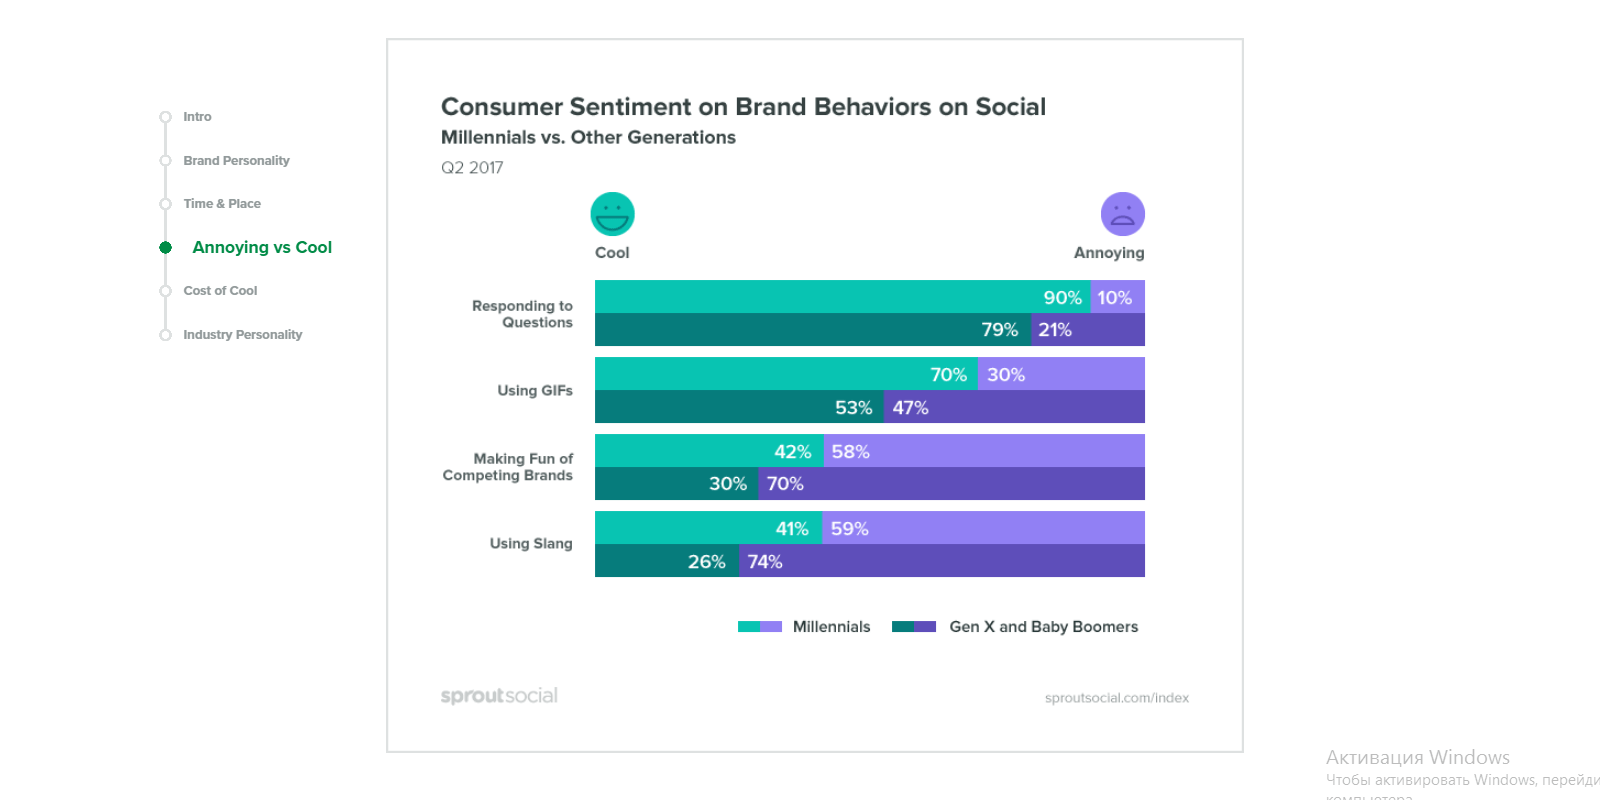 Consumer sentiment on brand behaviors on social media